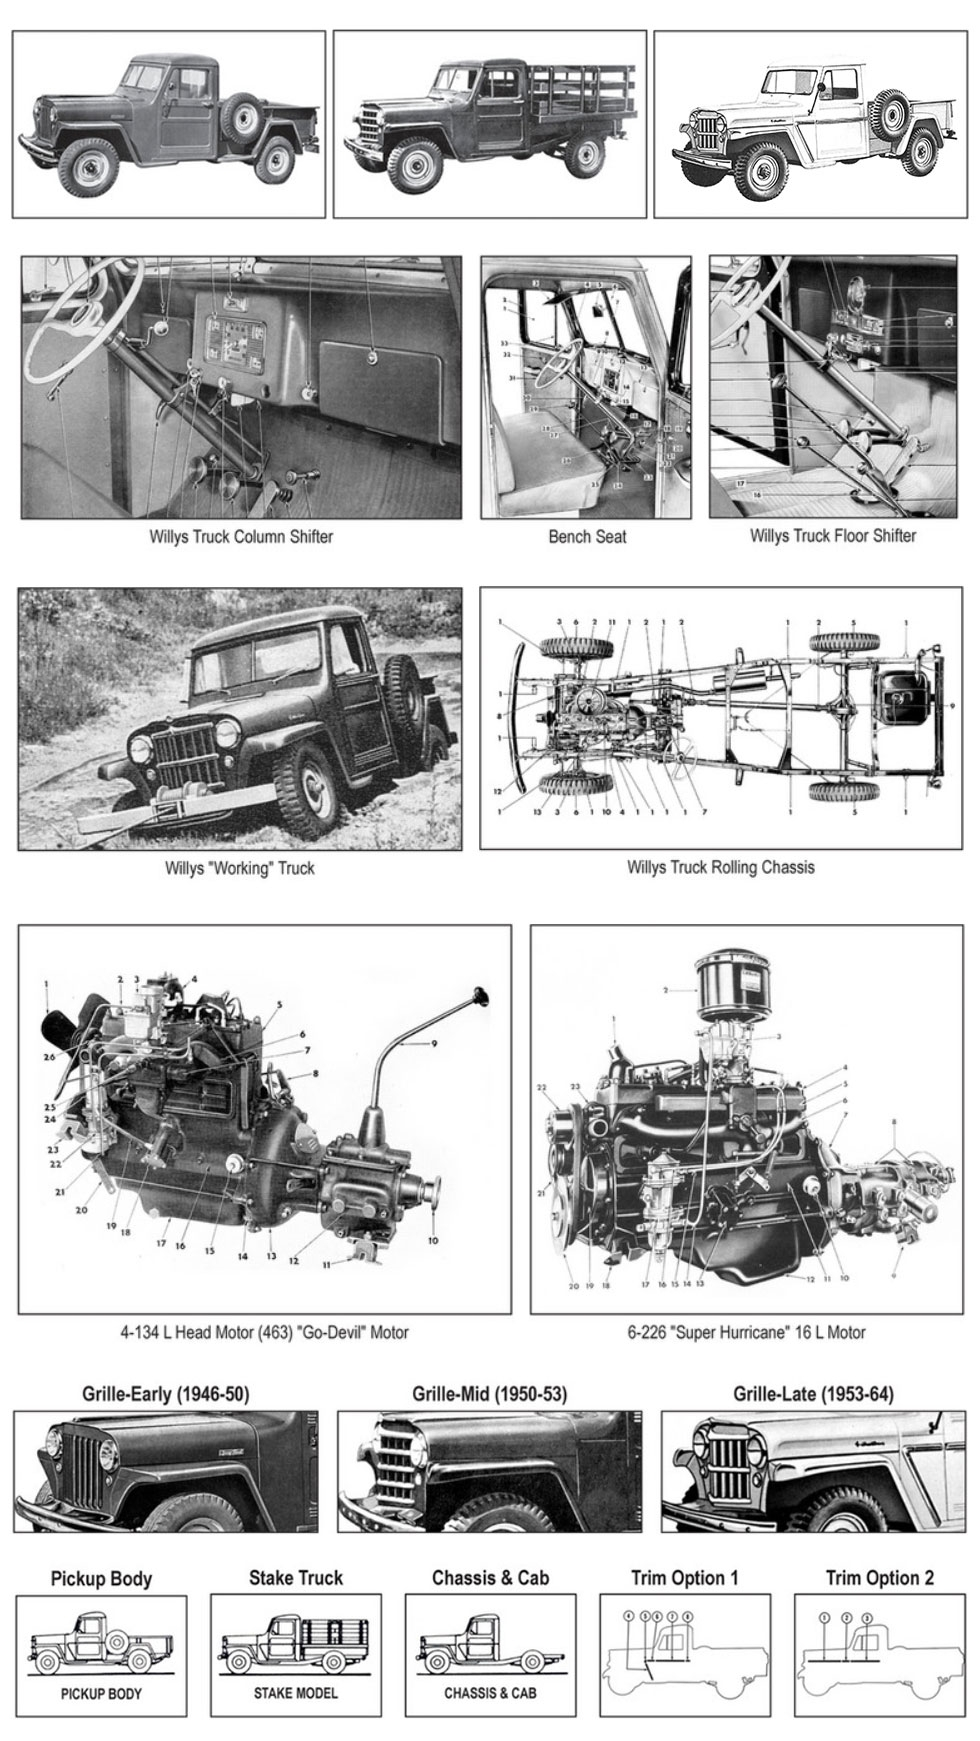 1946 1964 Truck General Specs Jeep Fc 150 Wiring System Willys Details